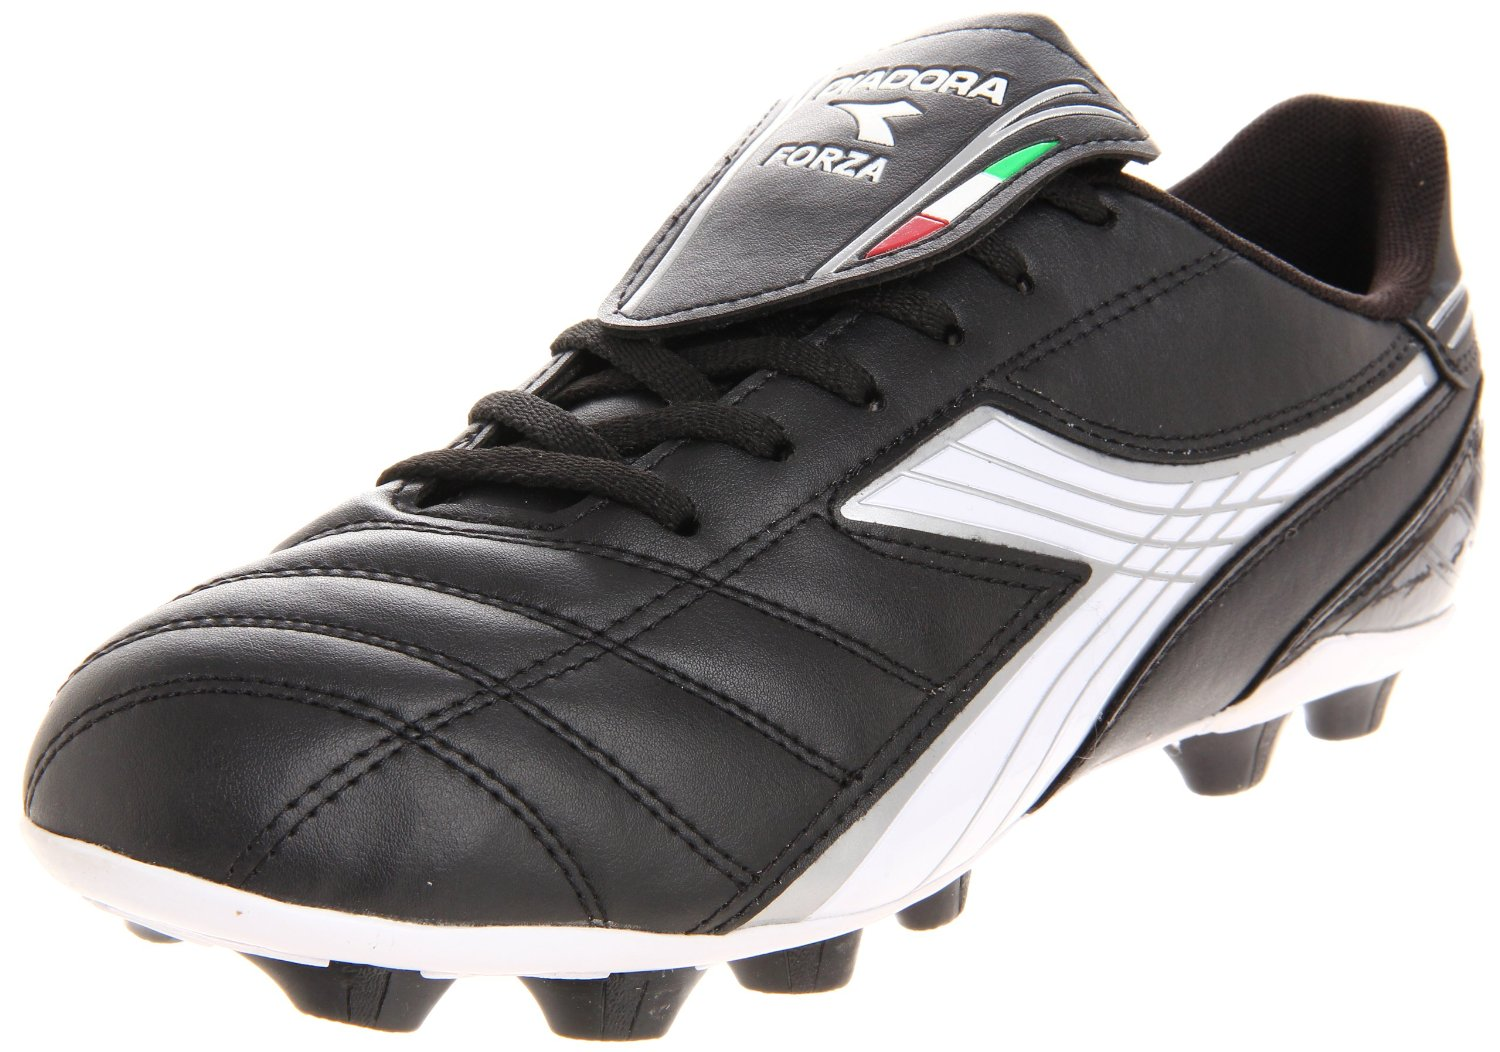 Diadora soccer cleats by Code Four Athletics